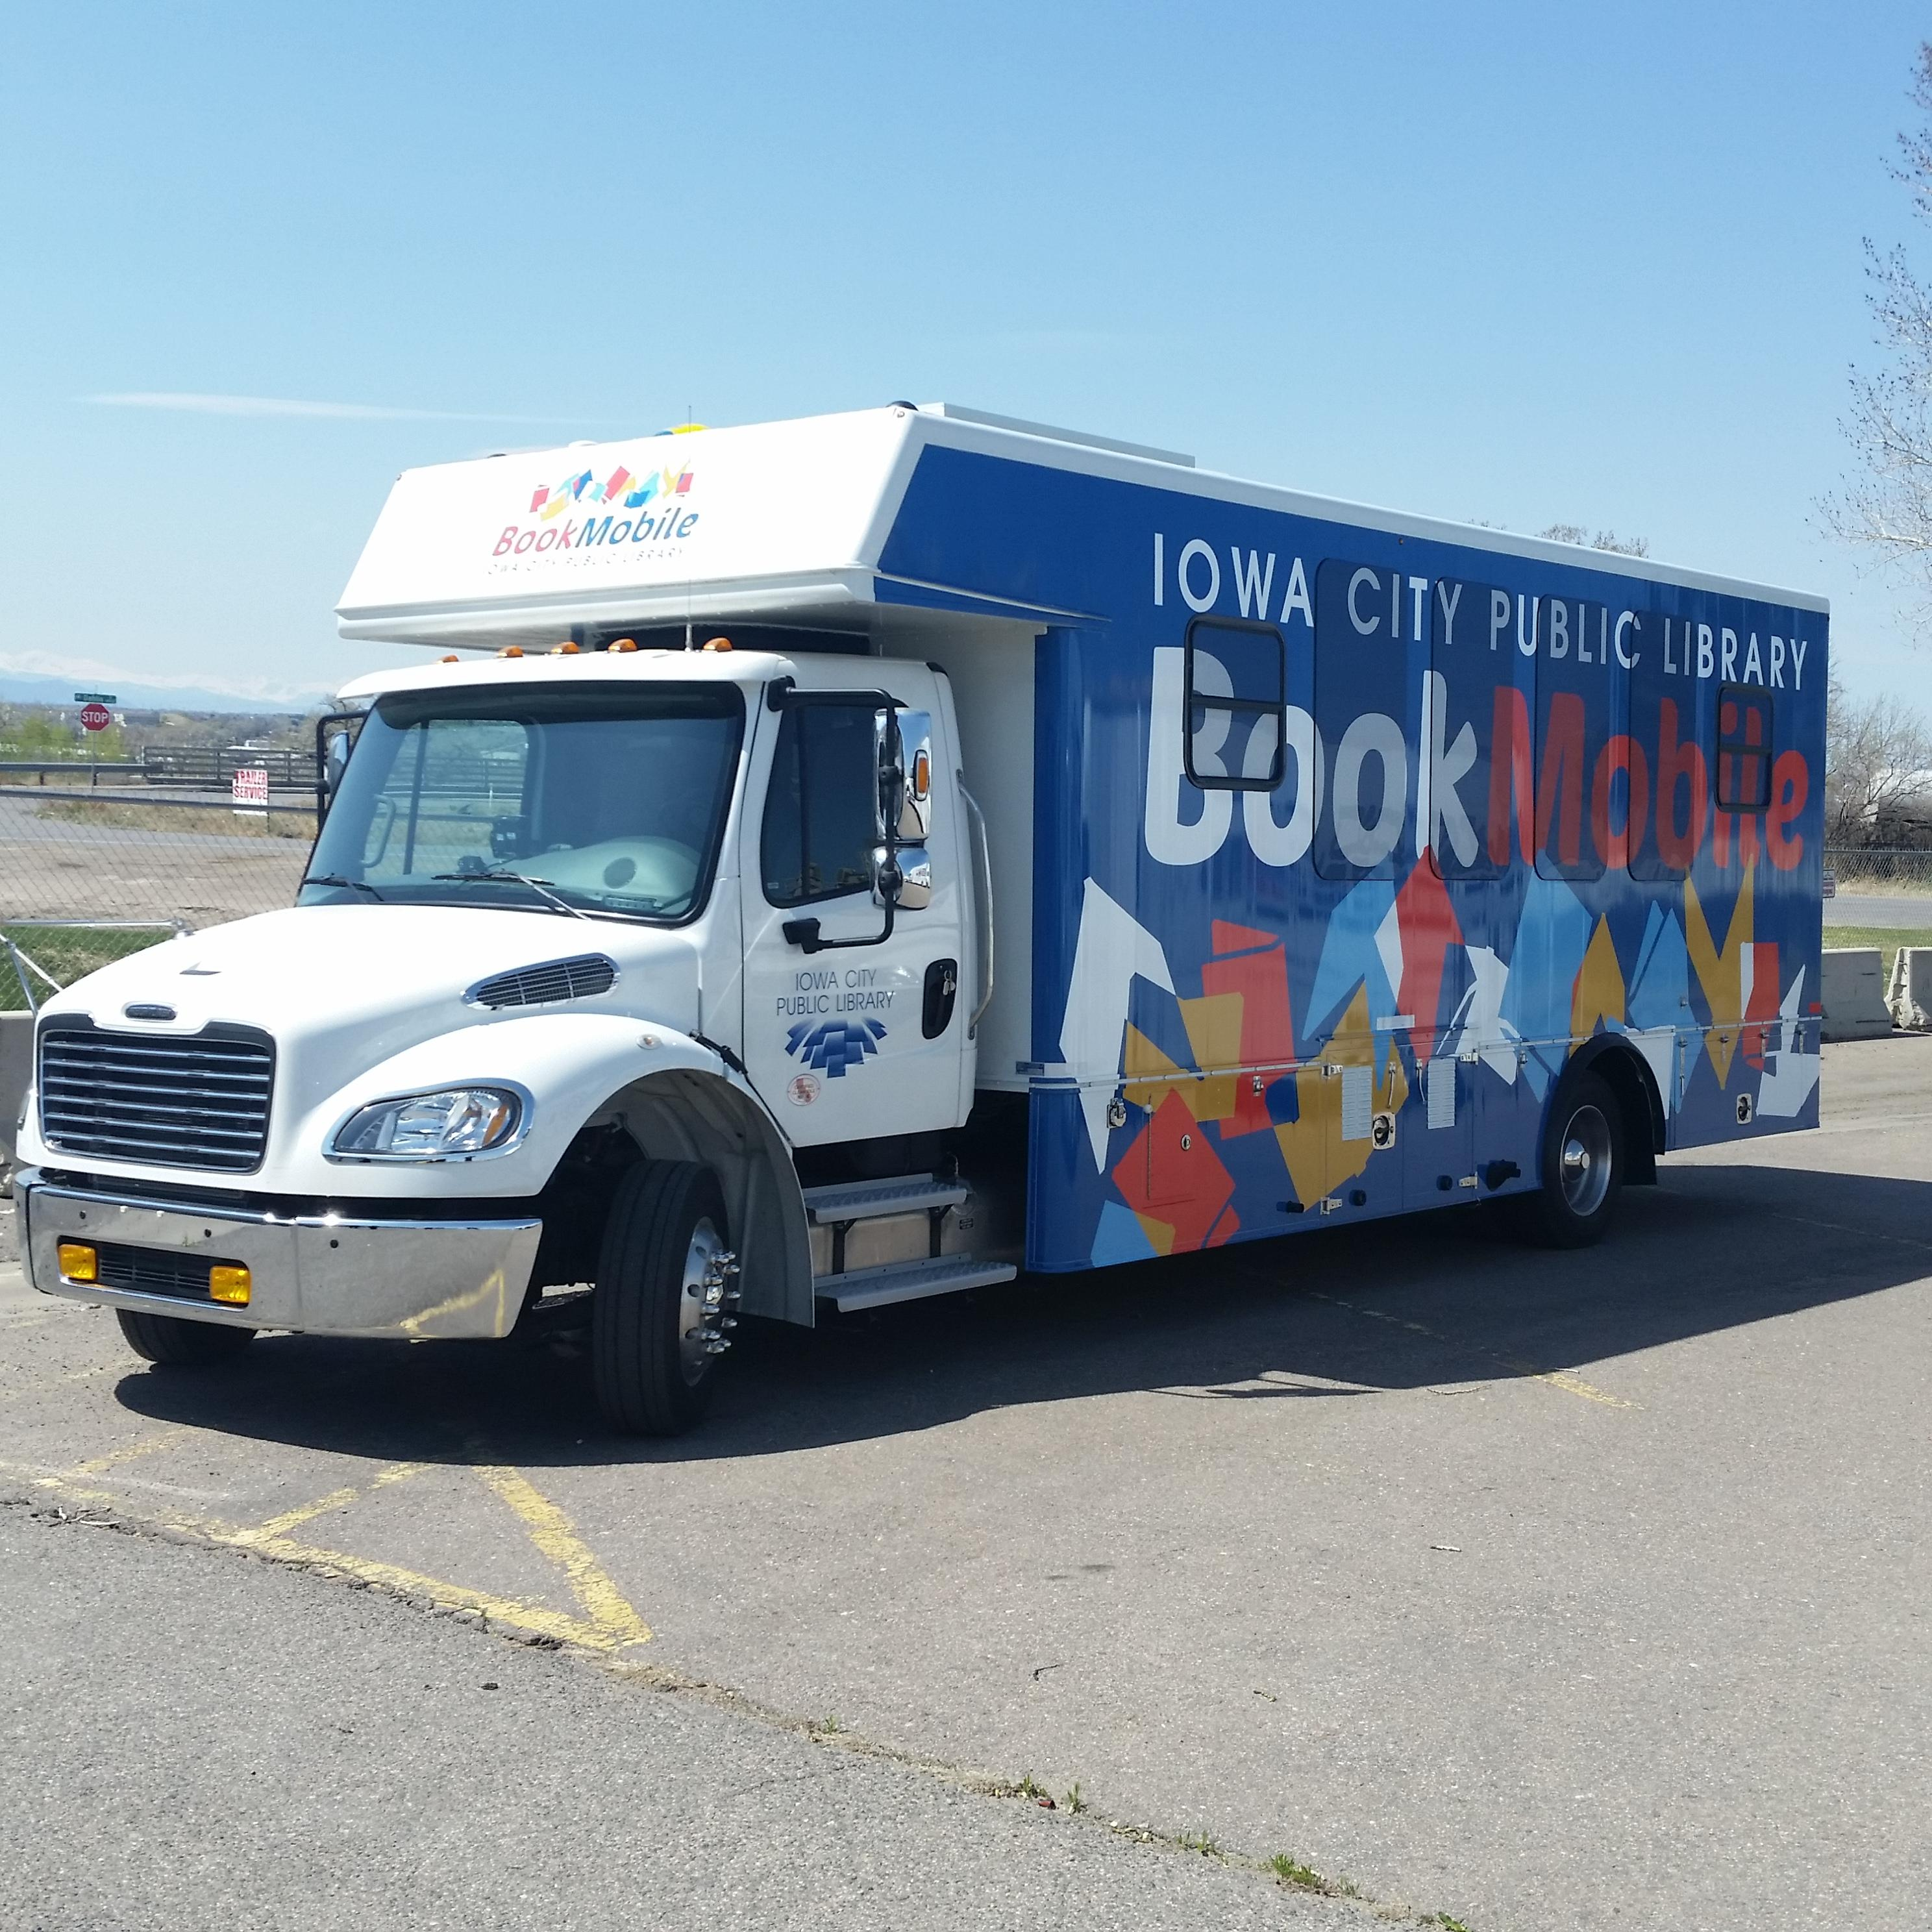 ICPL Bookmobile parked on a concrete lot, with blue sky visible.